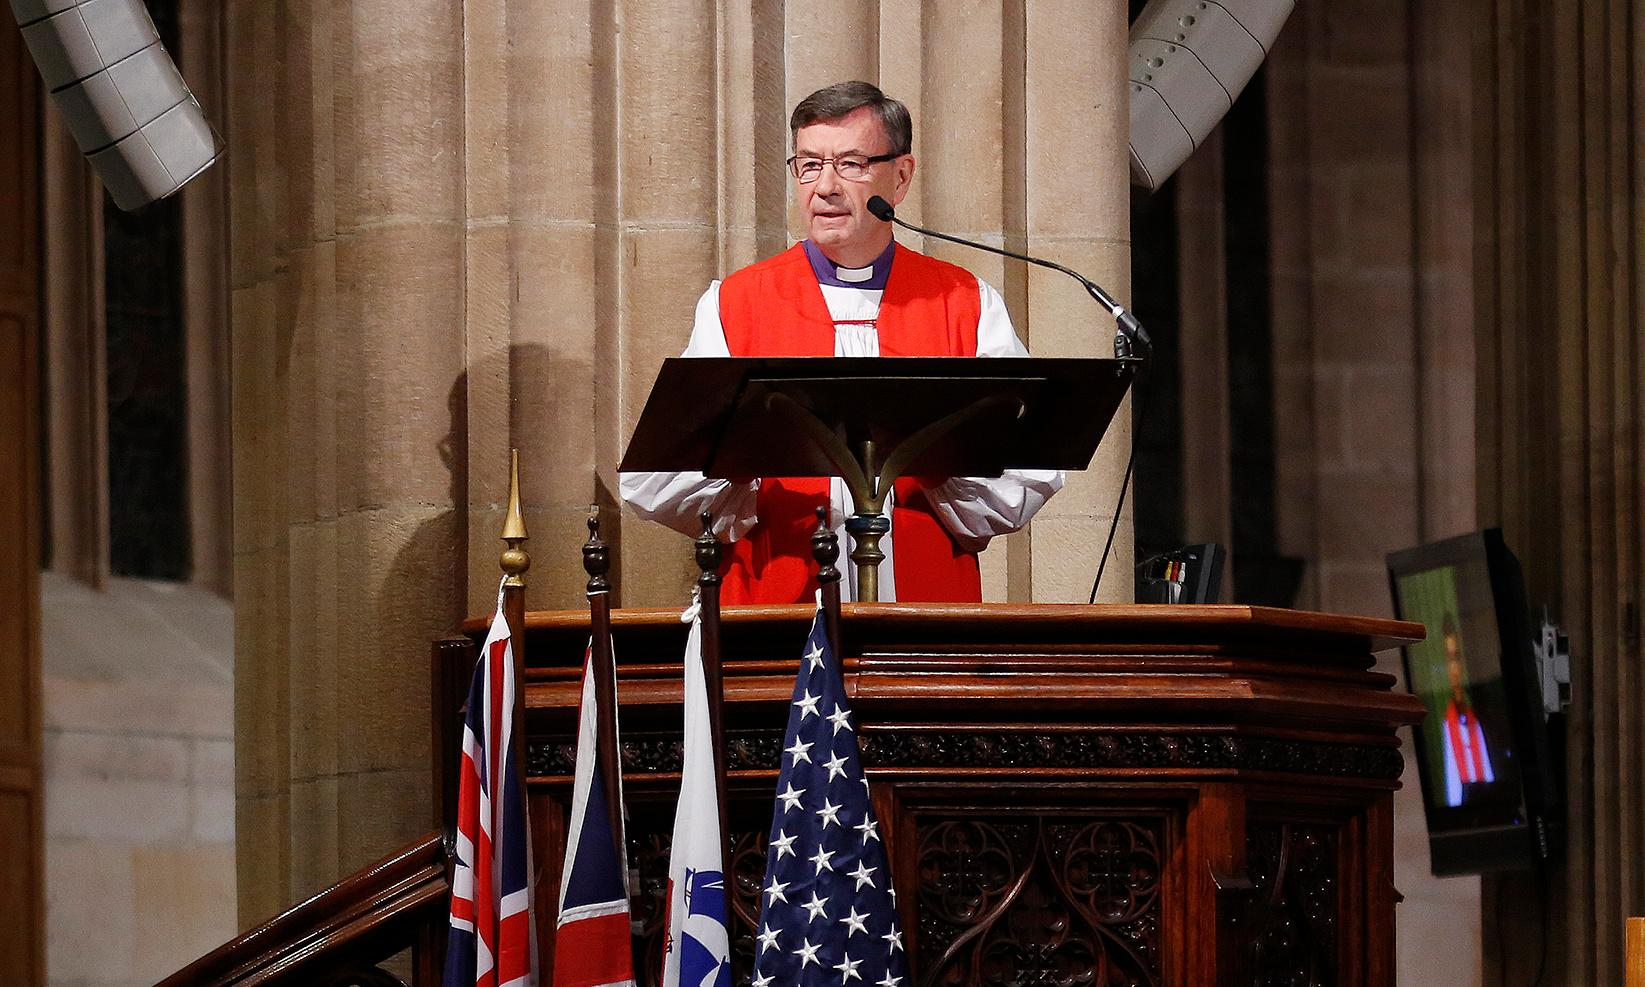 Pro-gay marriage Anglicans are walking a fine line in the Australian church